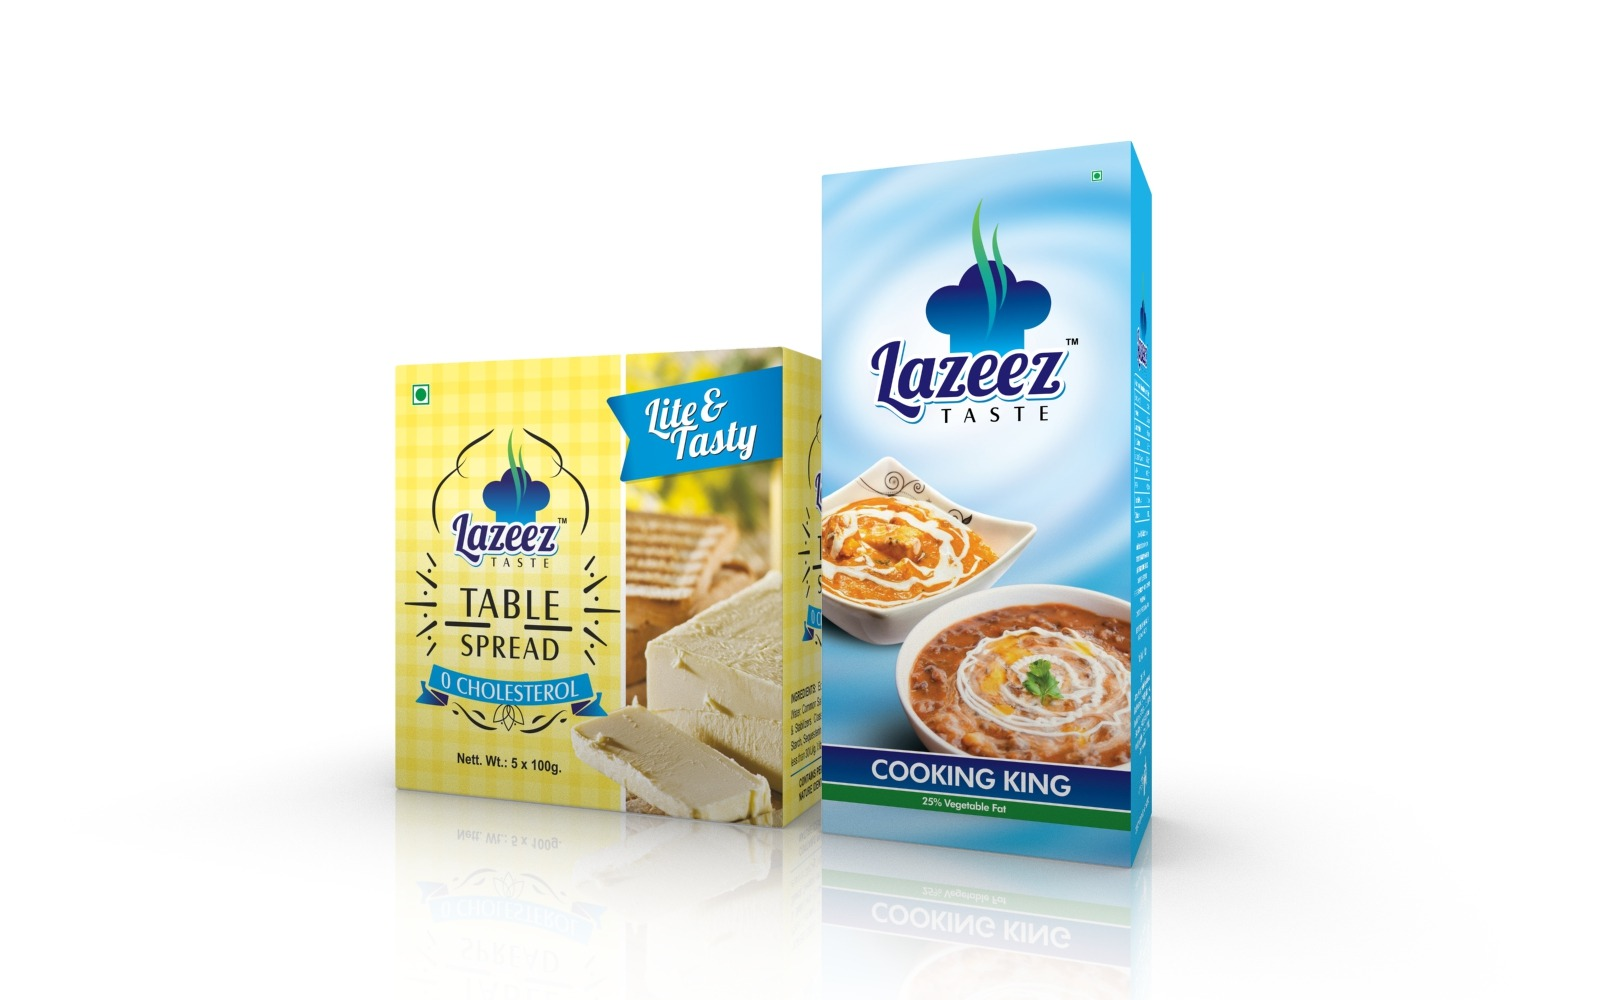 Table spread & Dairy cream packaging box designs